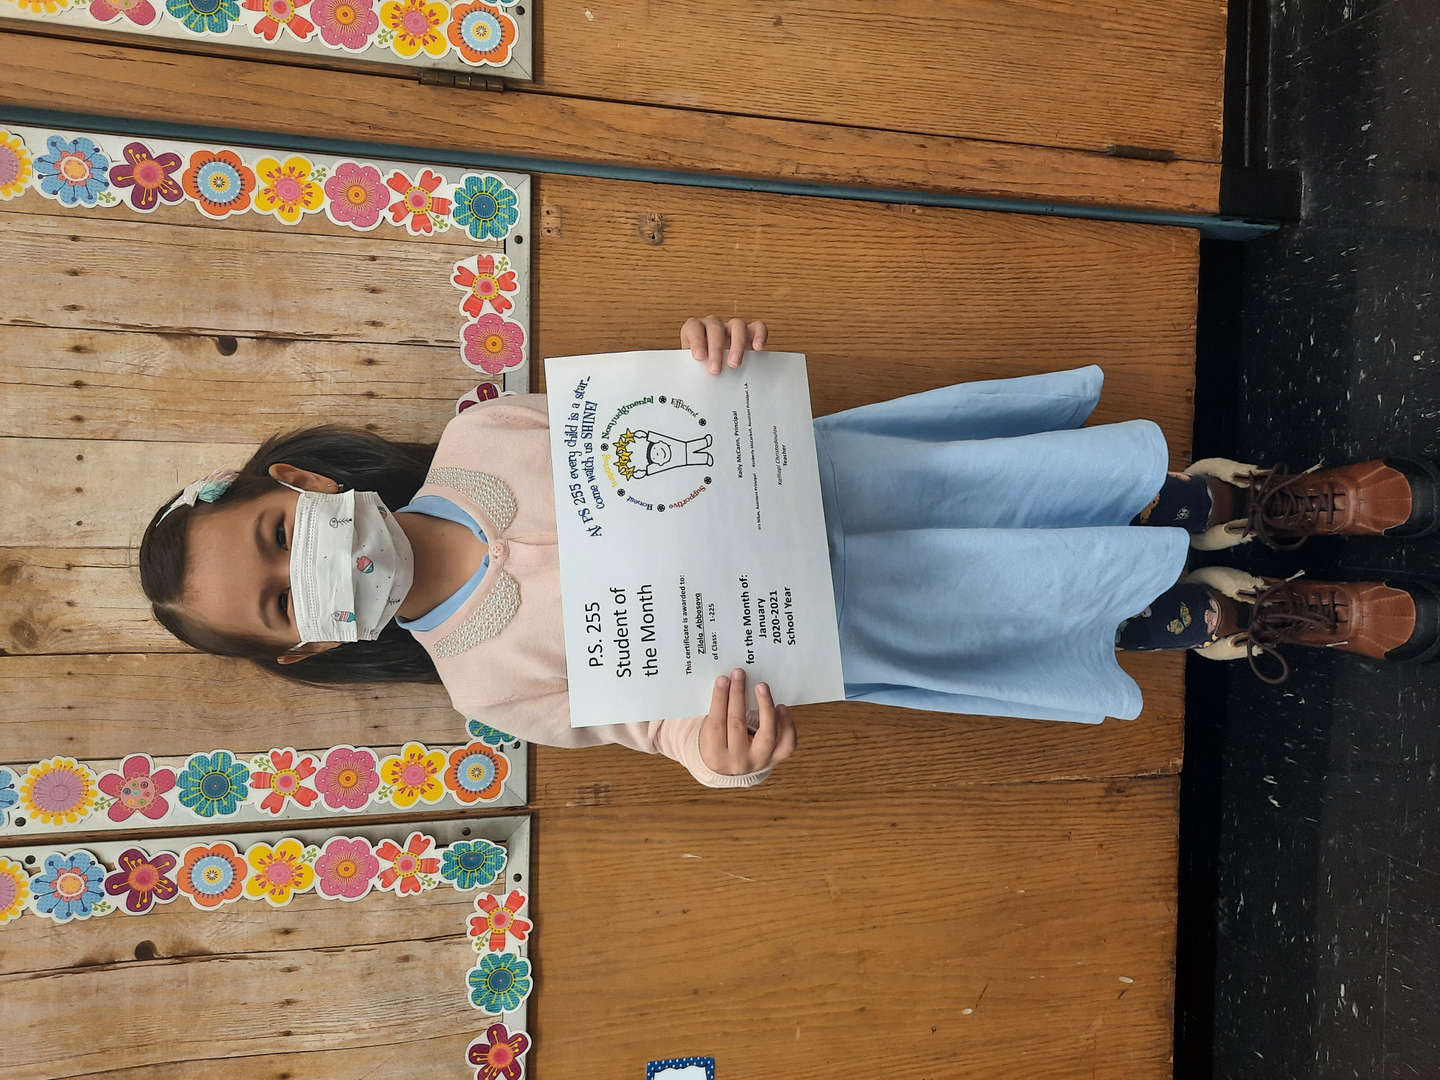 Zilola January Student of the Month